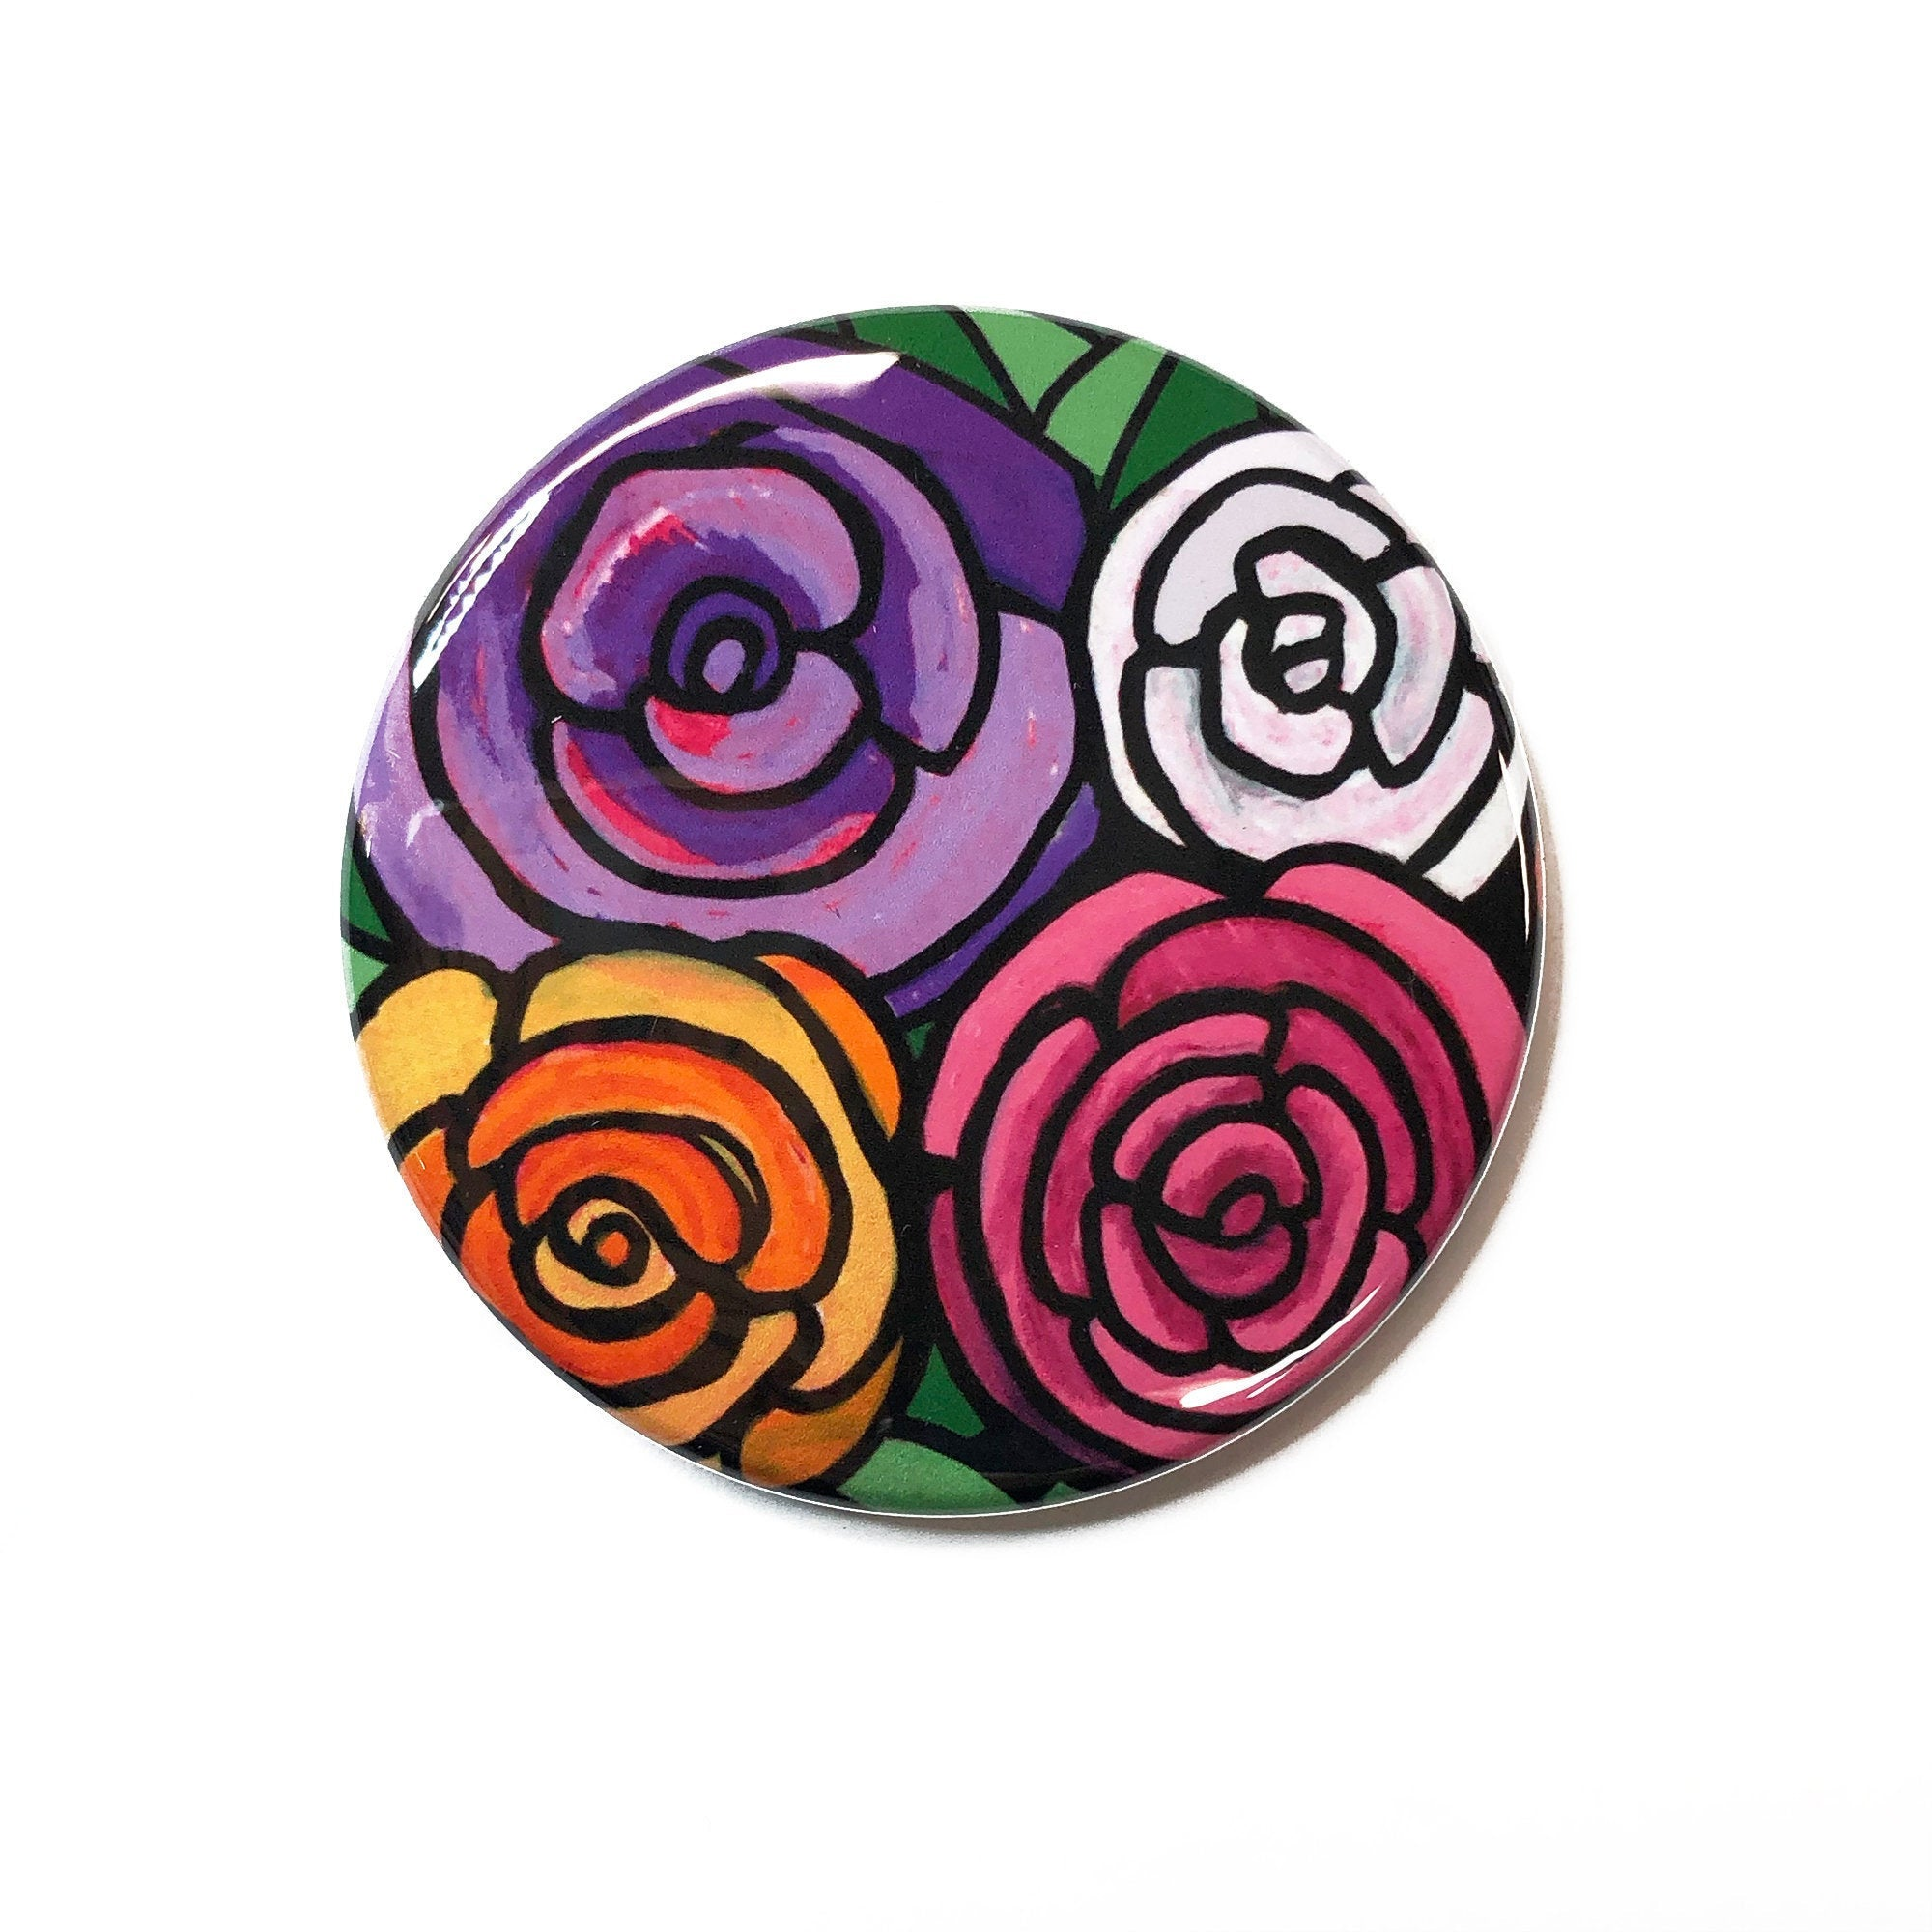 Spring Rose Magnet, Pin Back Button or Pocket Mirror - Pink, Purple, Orange, and White Roses - Wedding Party Favor, Gift Under 5 Dollars